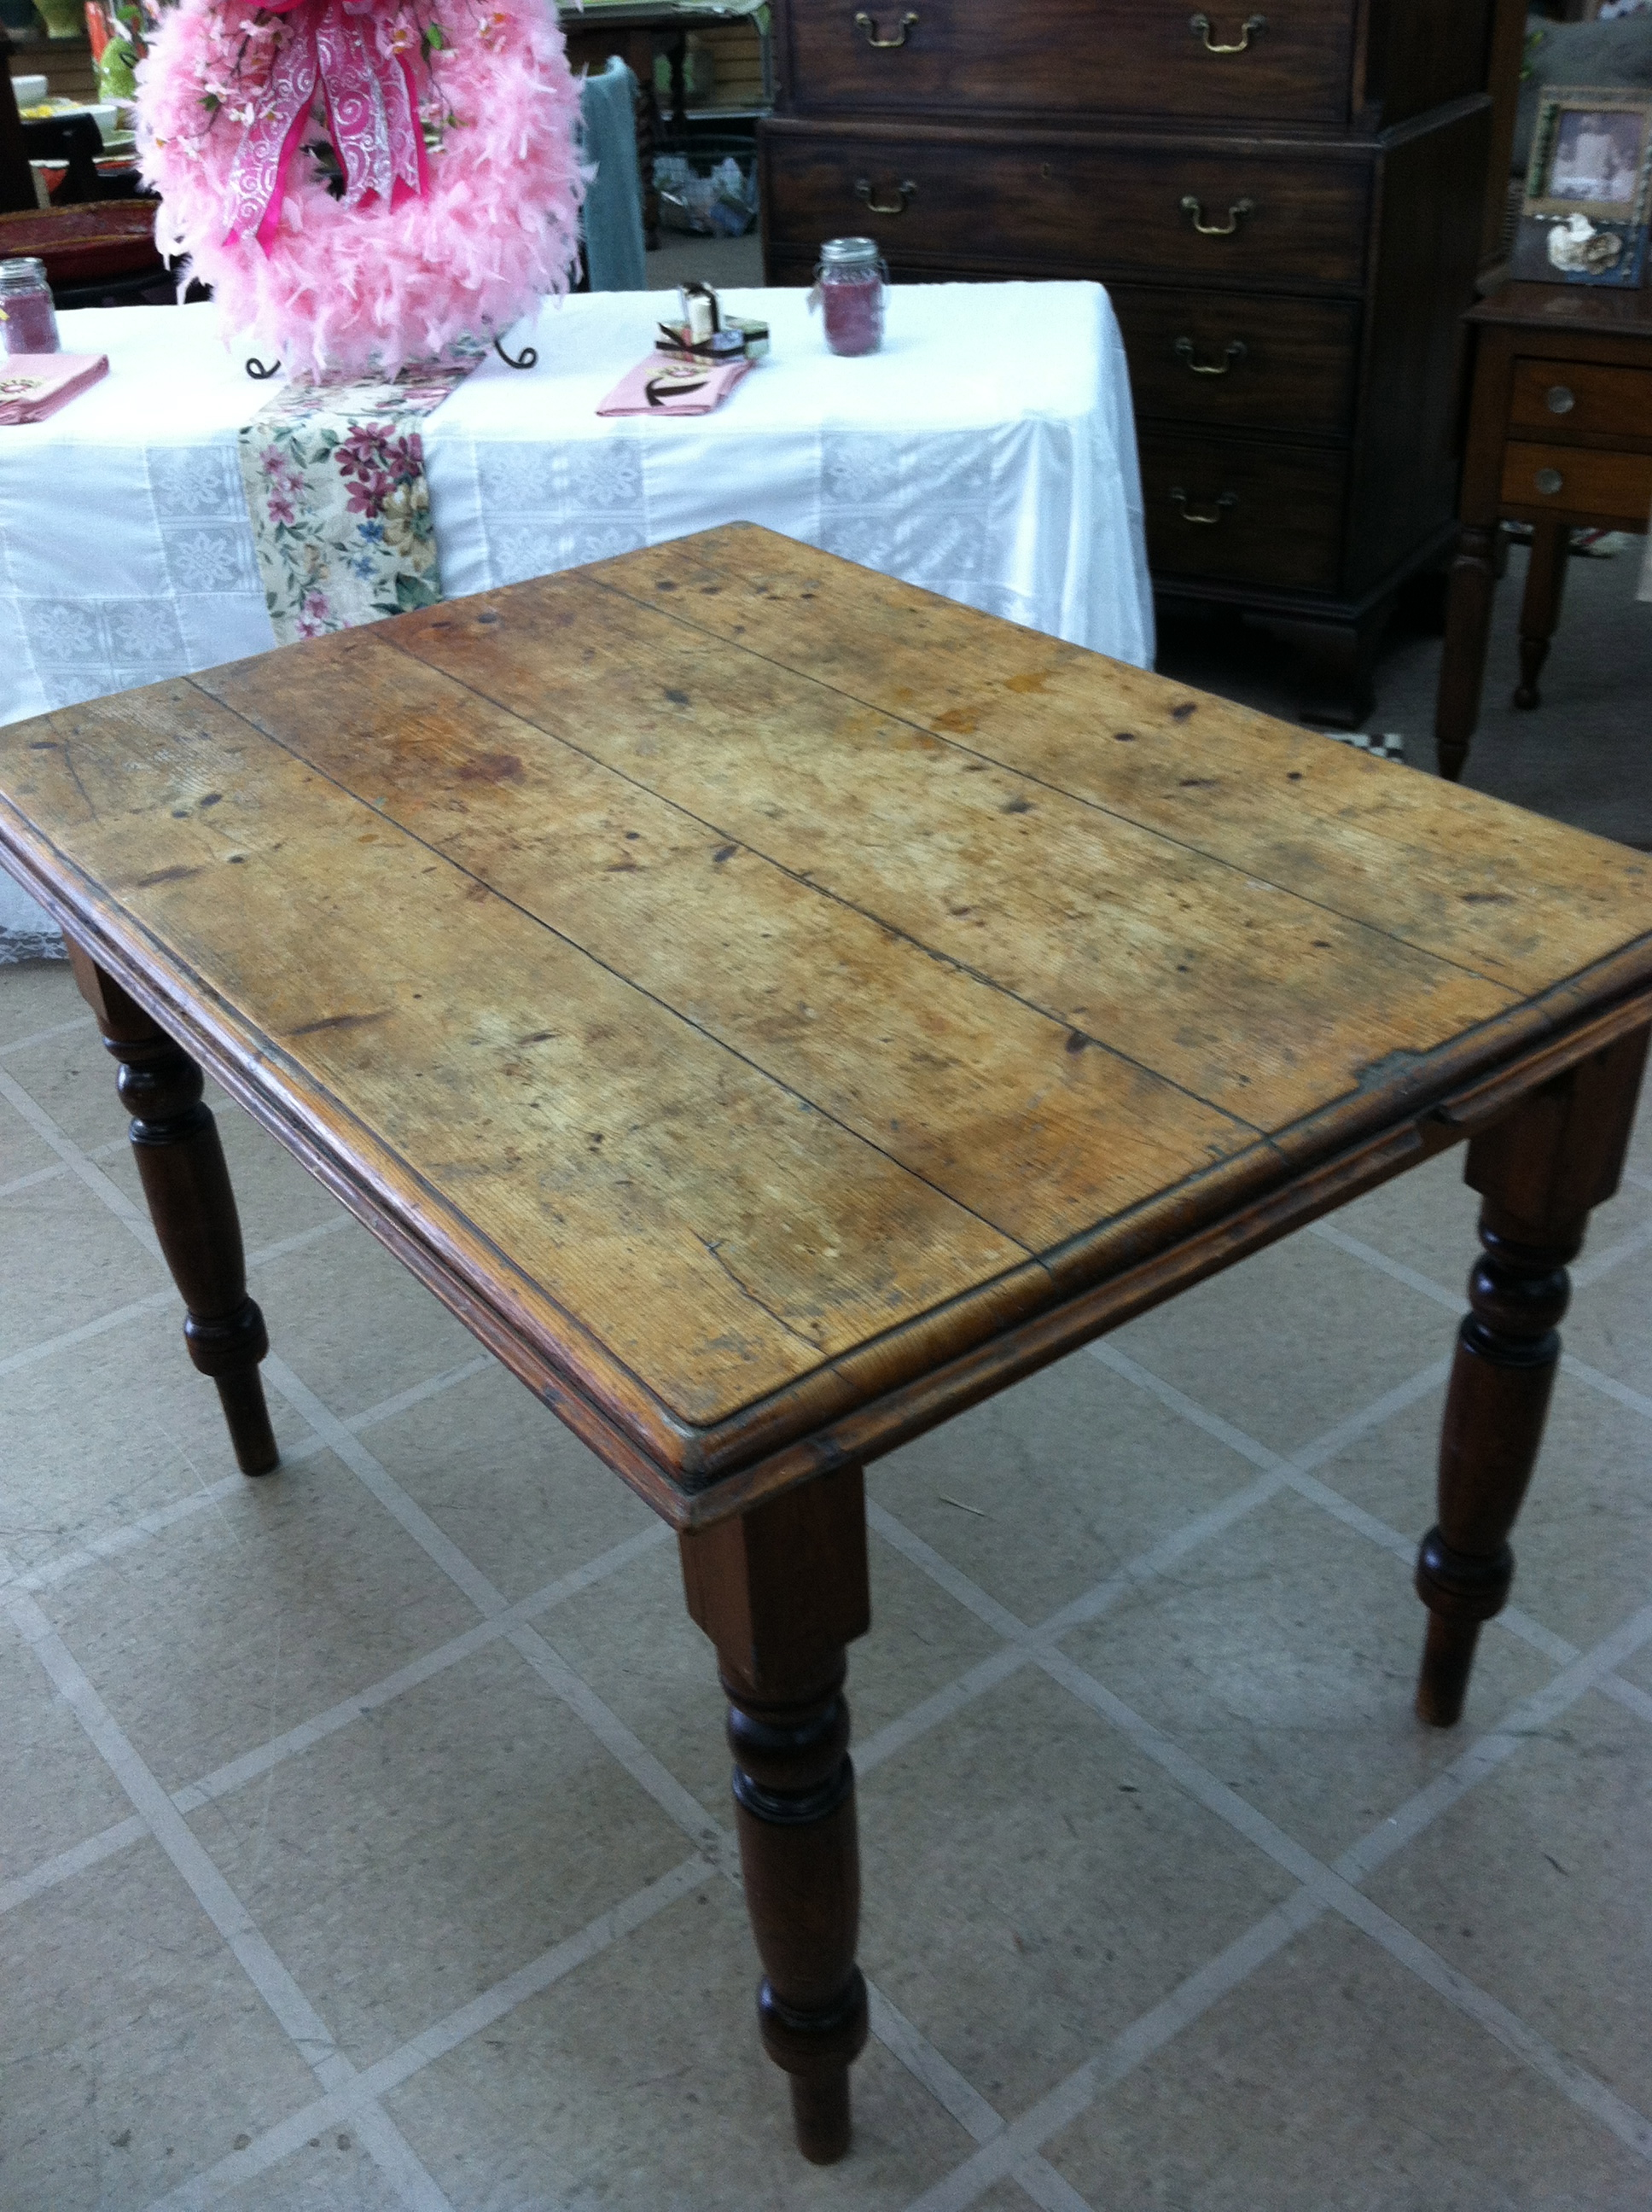 Antique rustic dining table - Offered Here Is A Gorgeous Antique Primitive Rustic Country Pine Harvest Table Circa 19th Century This Piece Is In Excellent Shabby Chic Condition